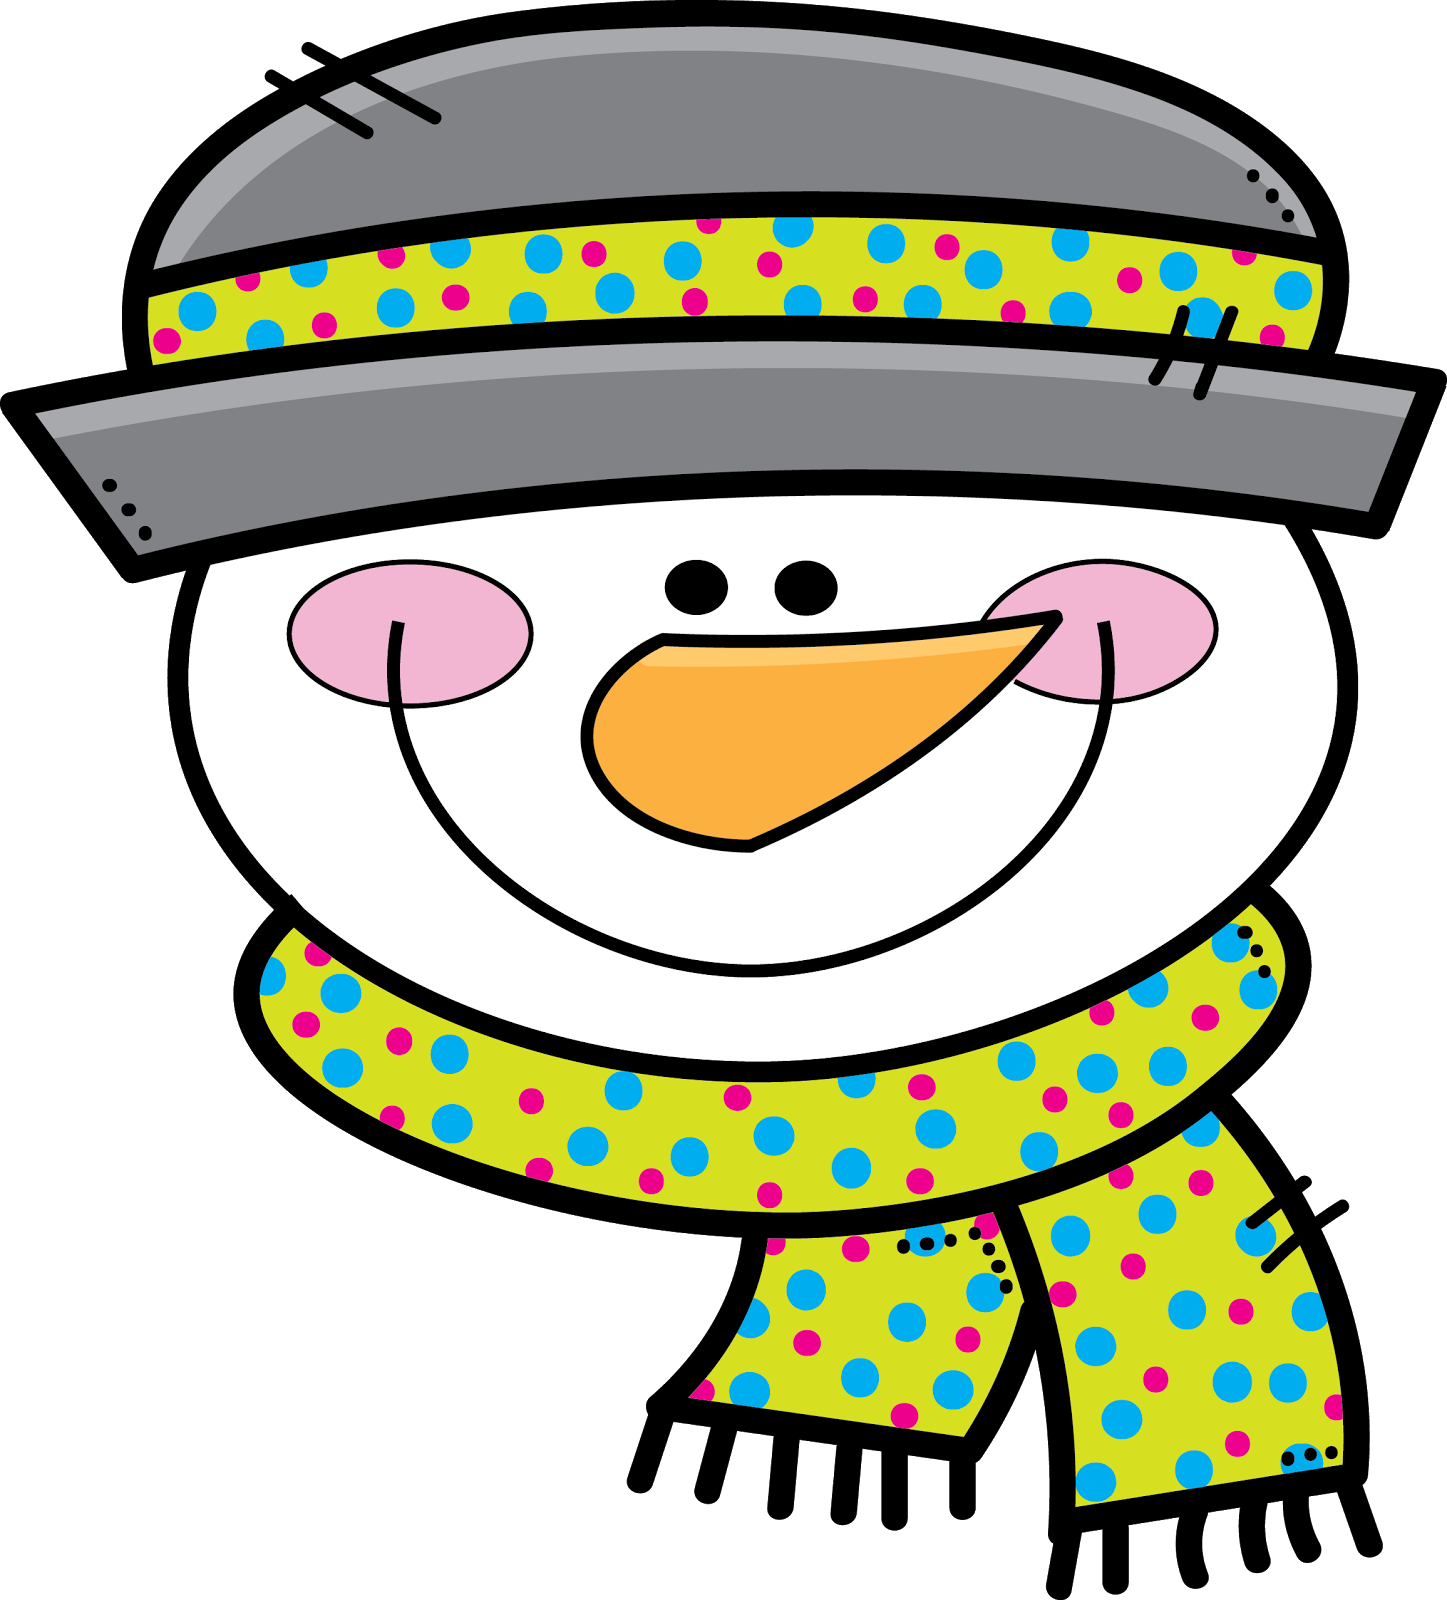 January clipart themed, January themed Transparent FREE for.